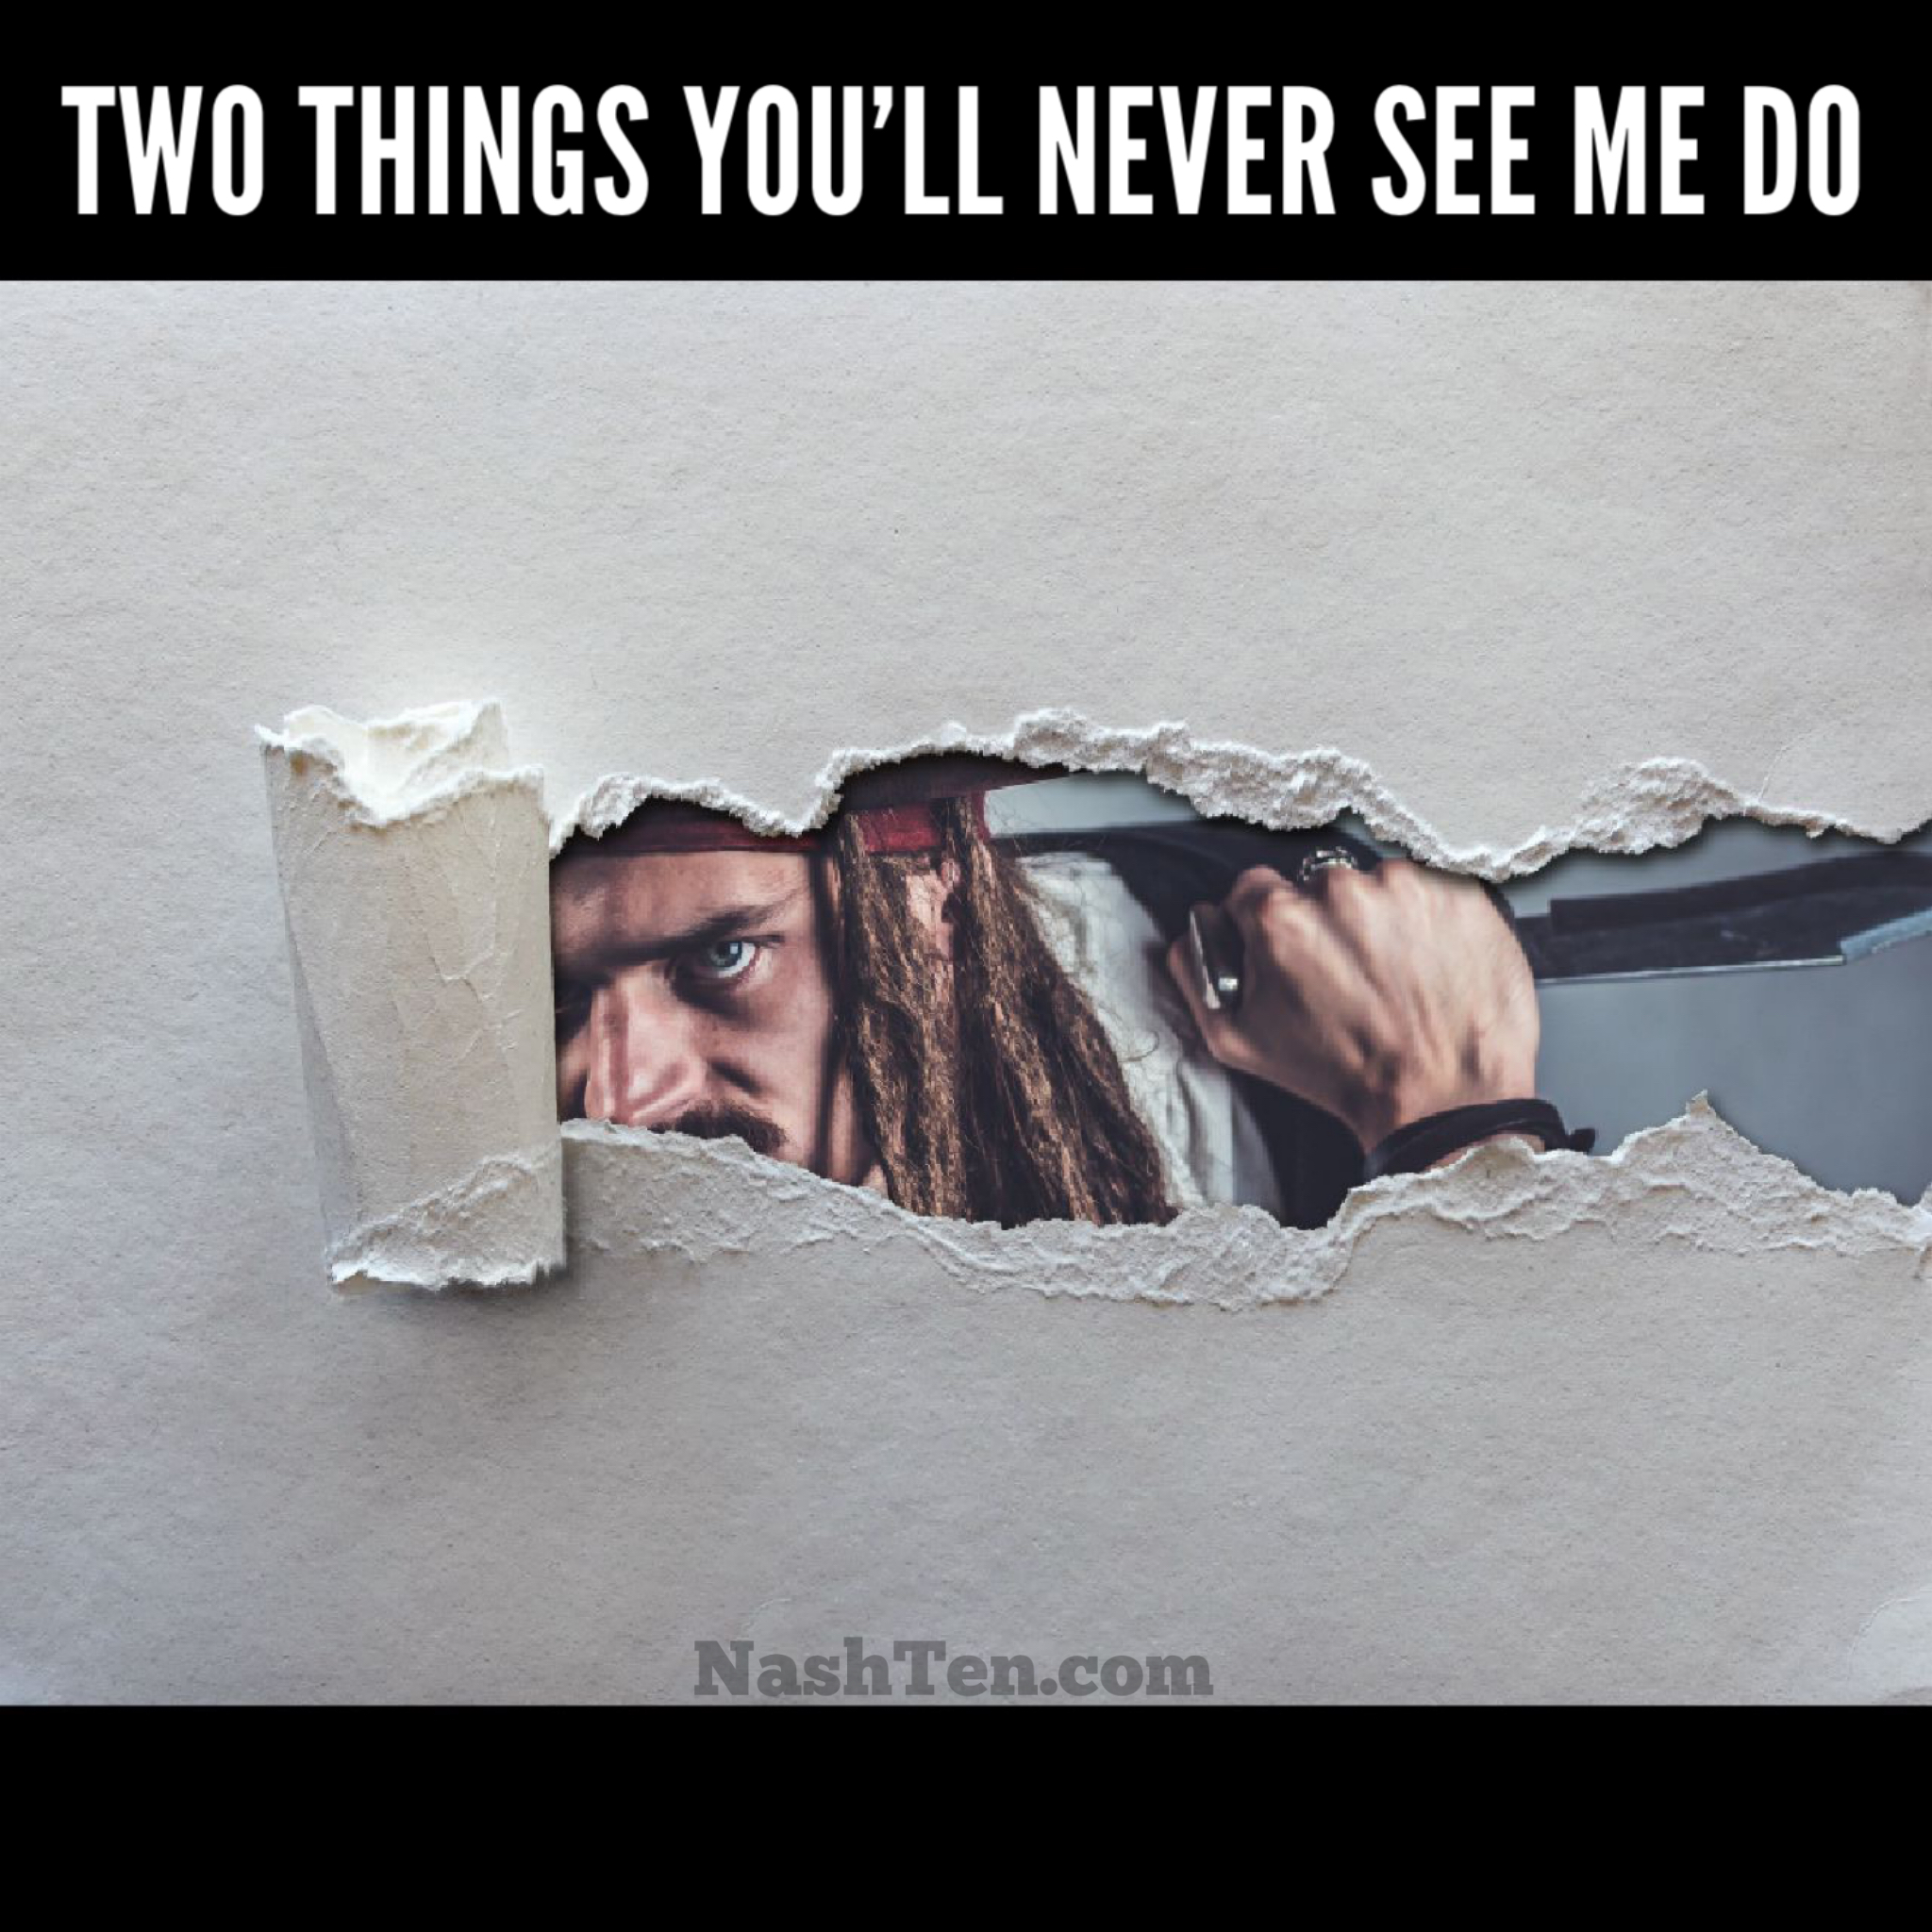 2 things you will never see me do